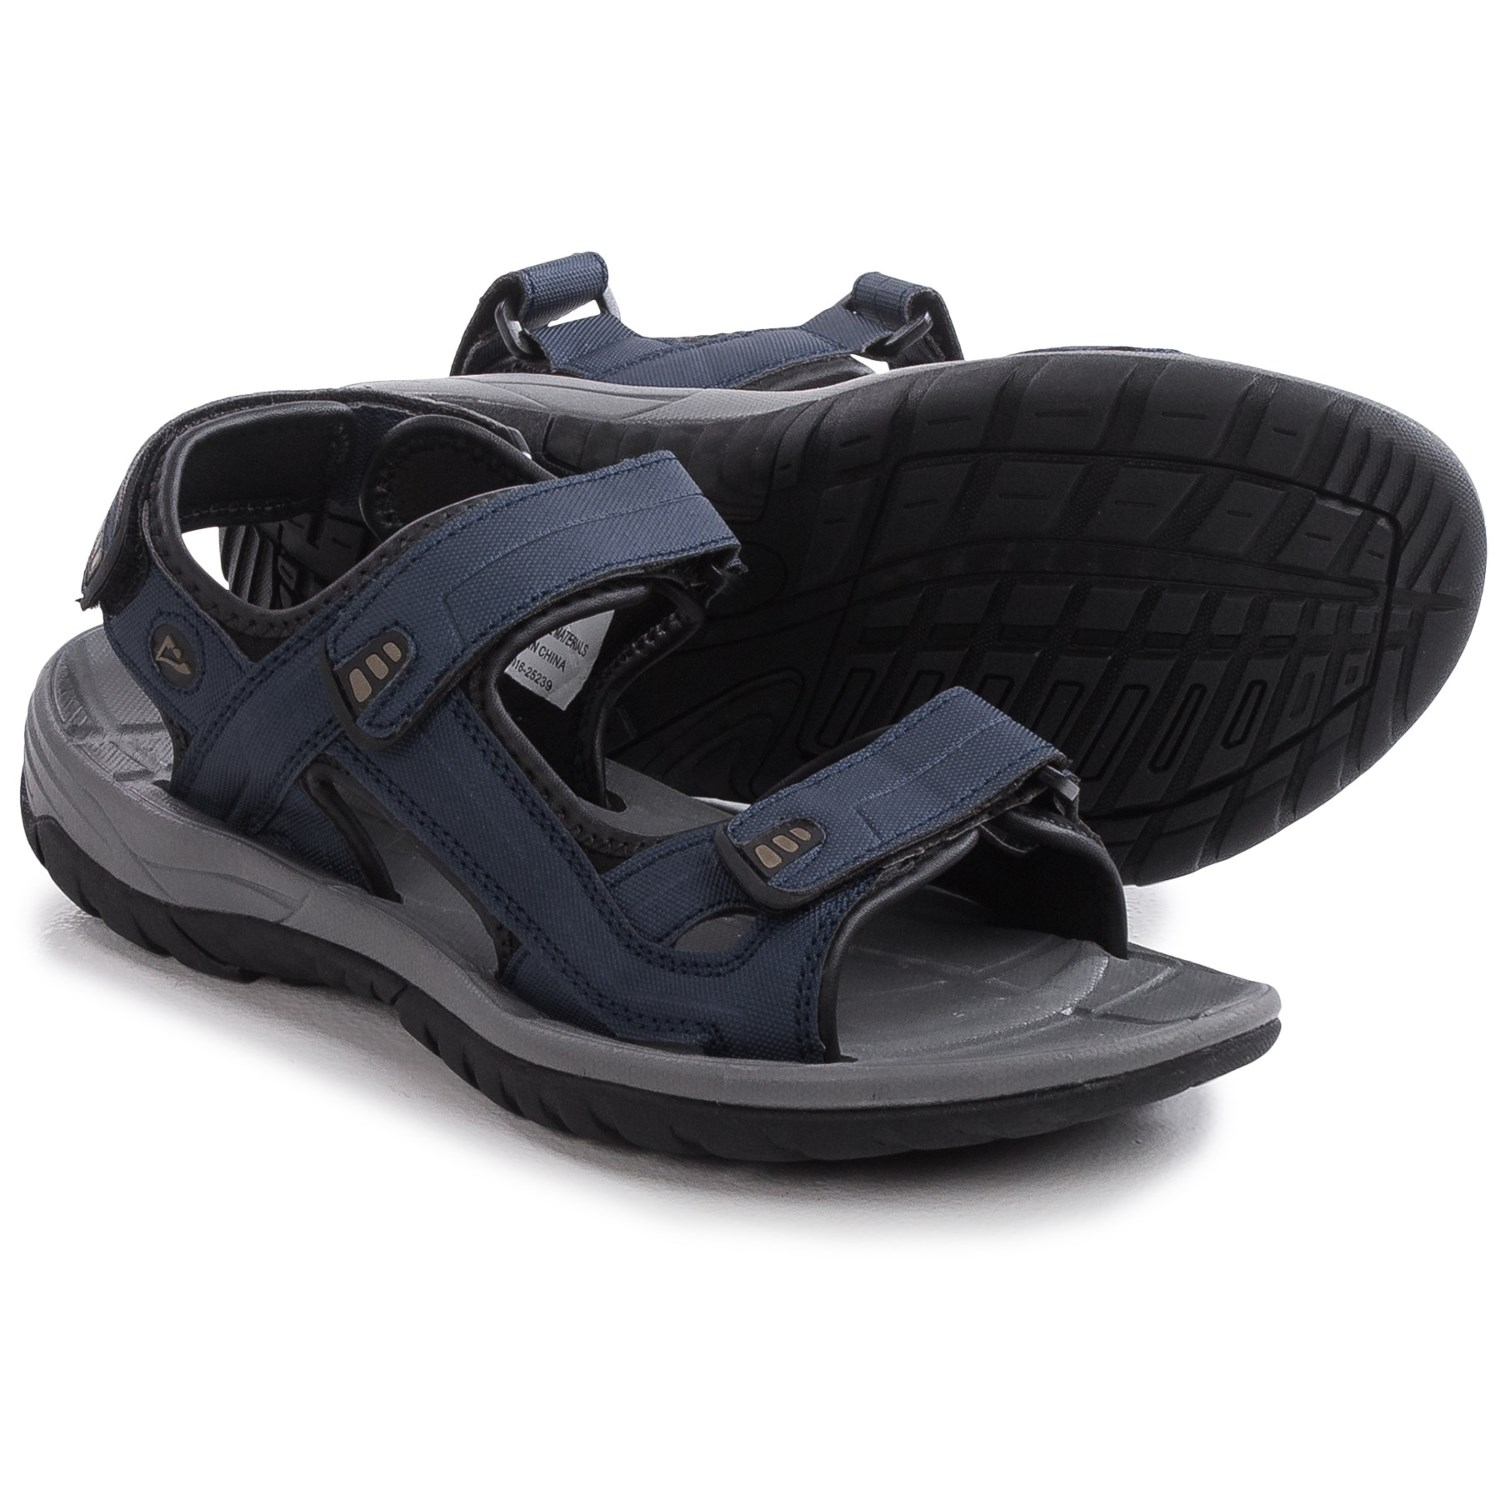 Find mens sandals from a vast selection of Shoes for Men. Get great deals on eBay! Skip to main content. eBay: Shop by category. US Summer Beach Mens Casual Leather Sandals Shoes Outdoor Anti-slip Slippers. $ Buy It Now. Free Shipping. 51+ Sold. Crocs Mens Swiftwater Sandal.